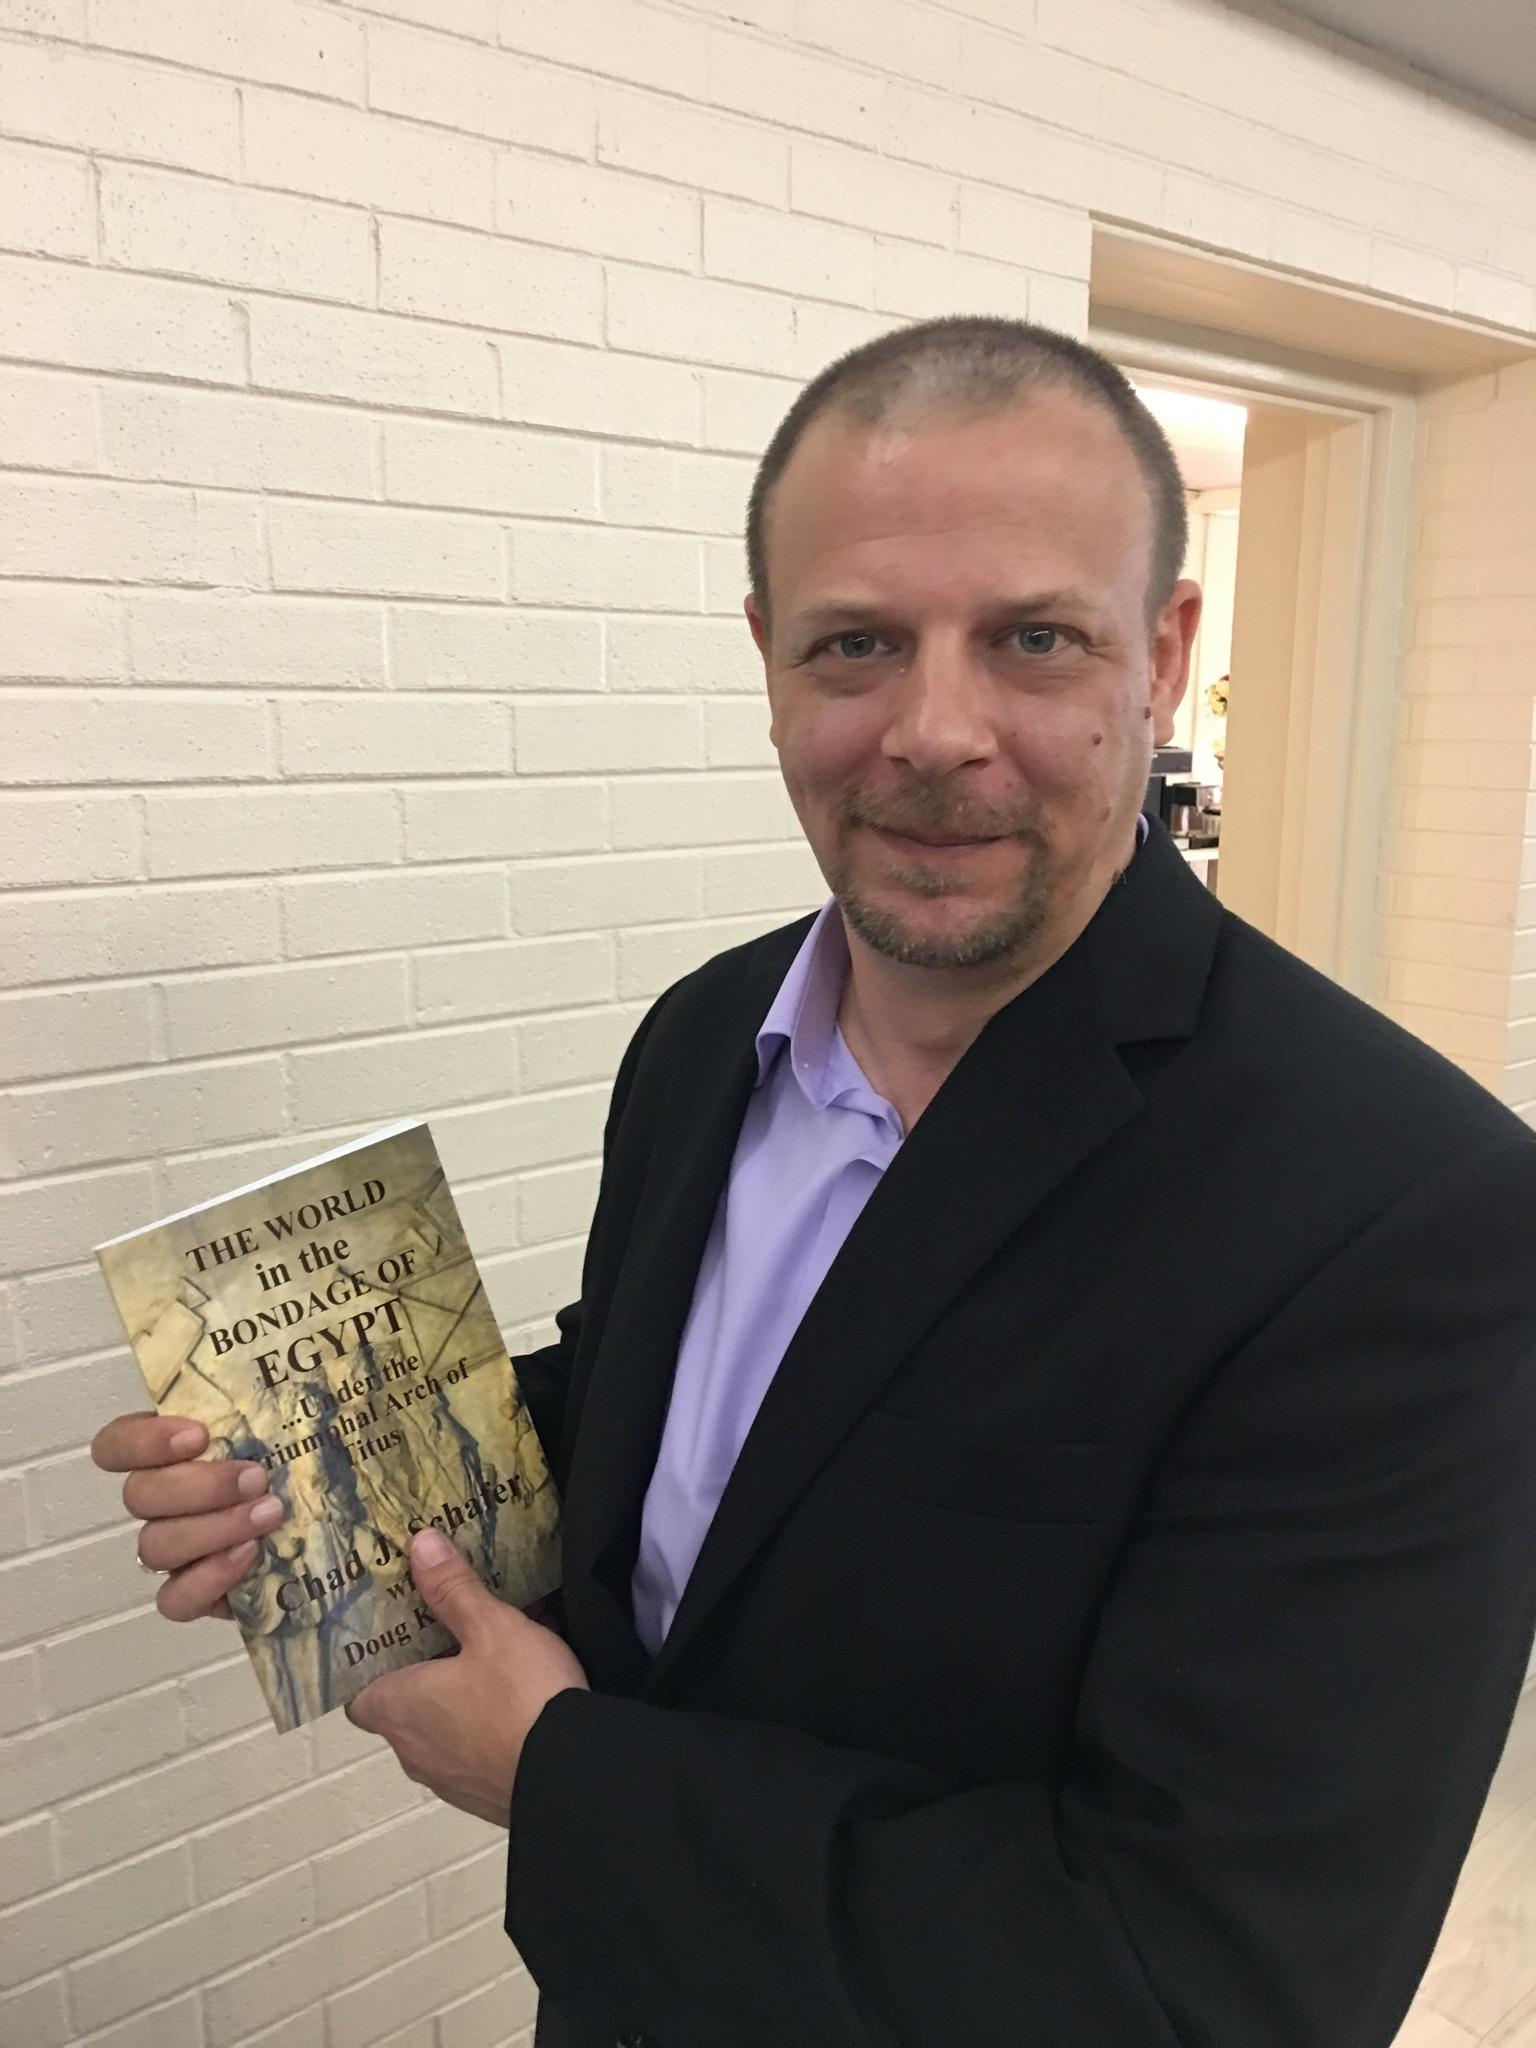 Chad with Book